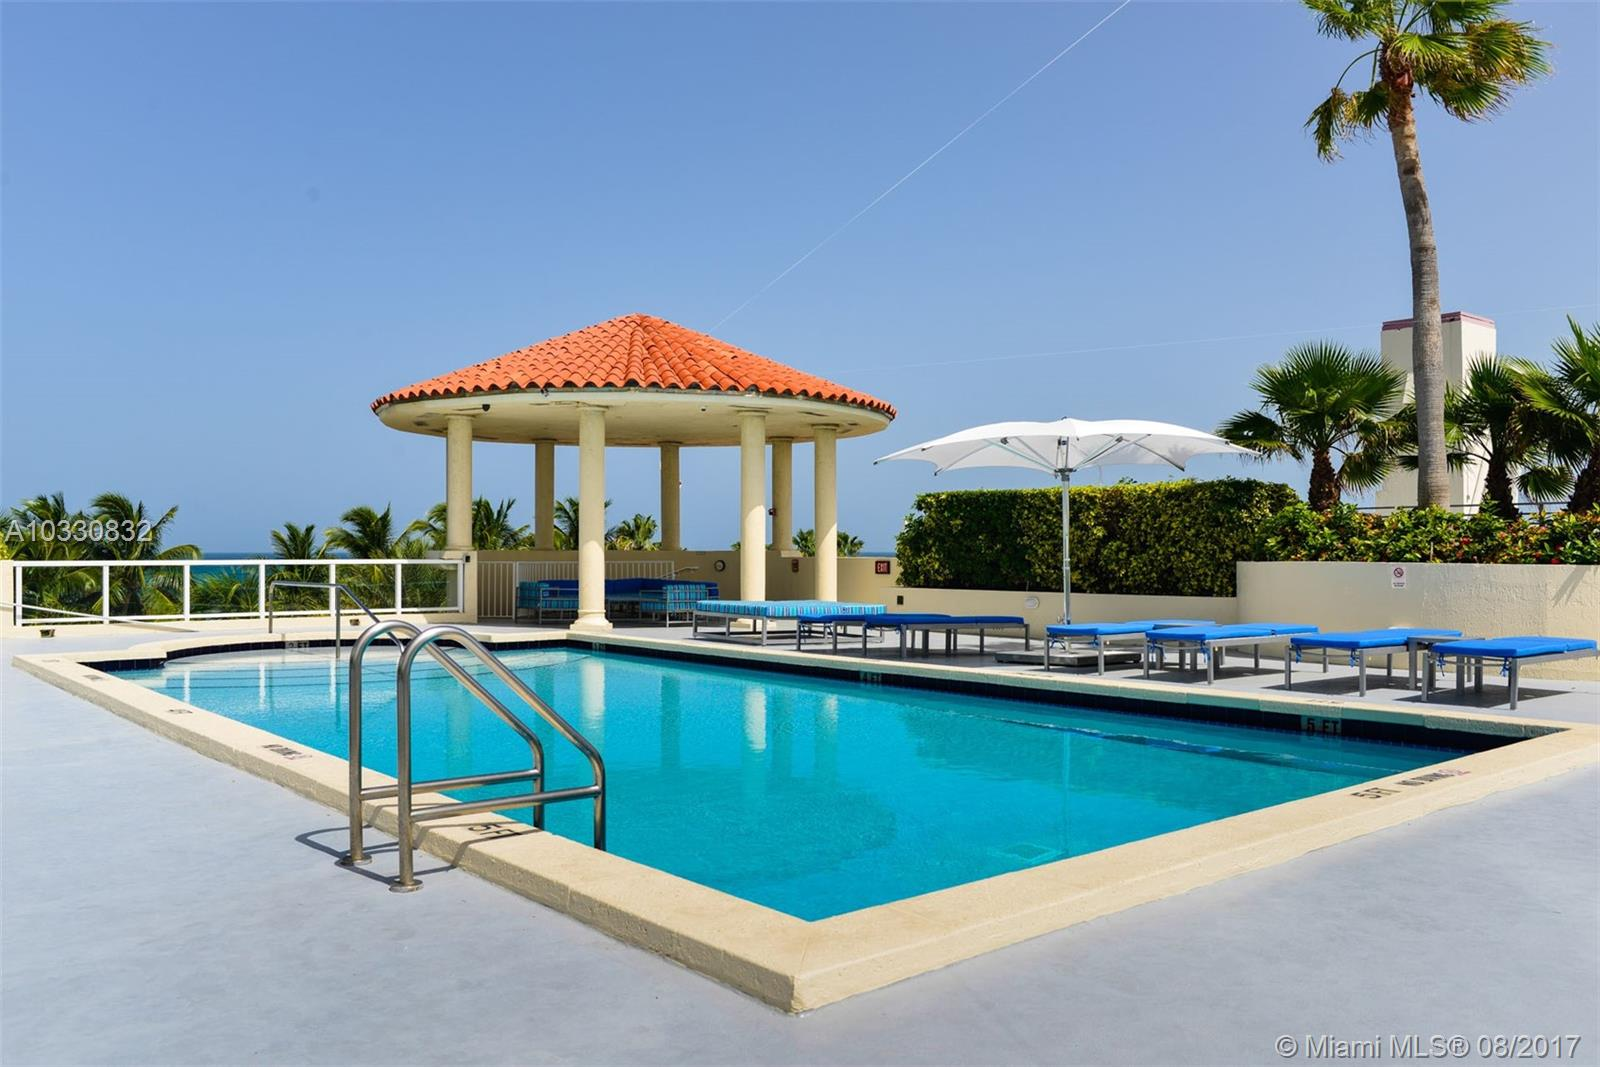 For sale 7330 ocean terrace 21 d miami beach fl for 7330 ocean terrace for sale